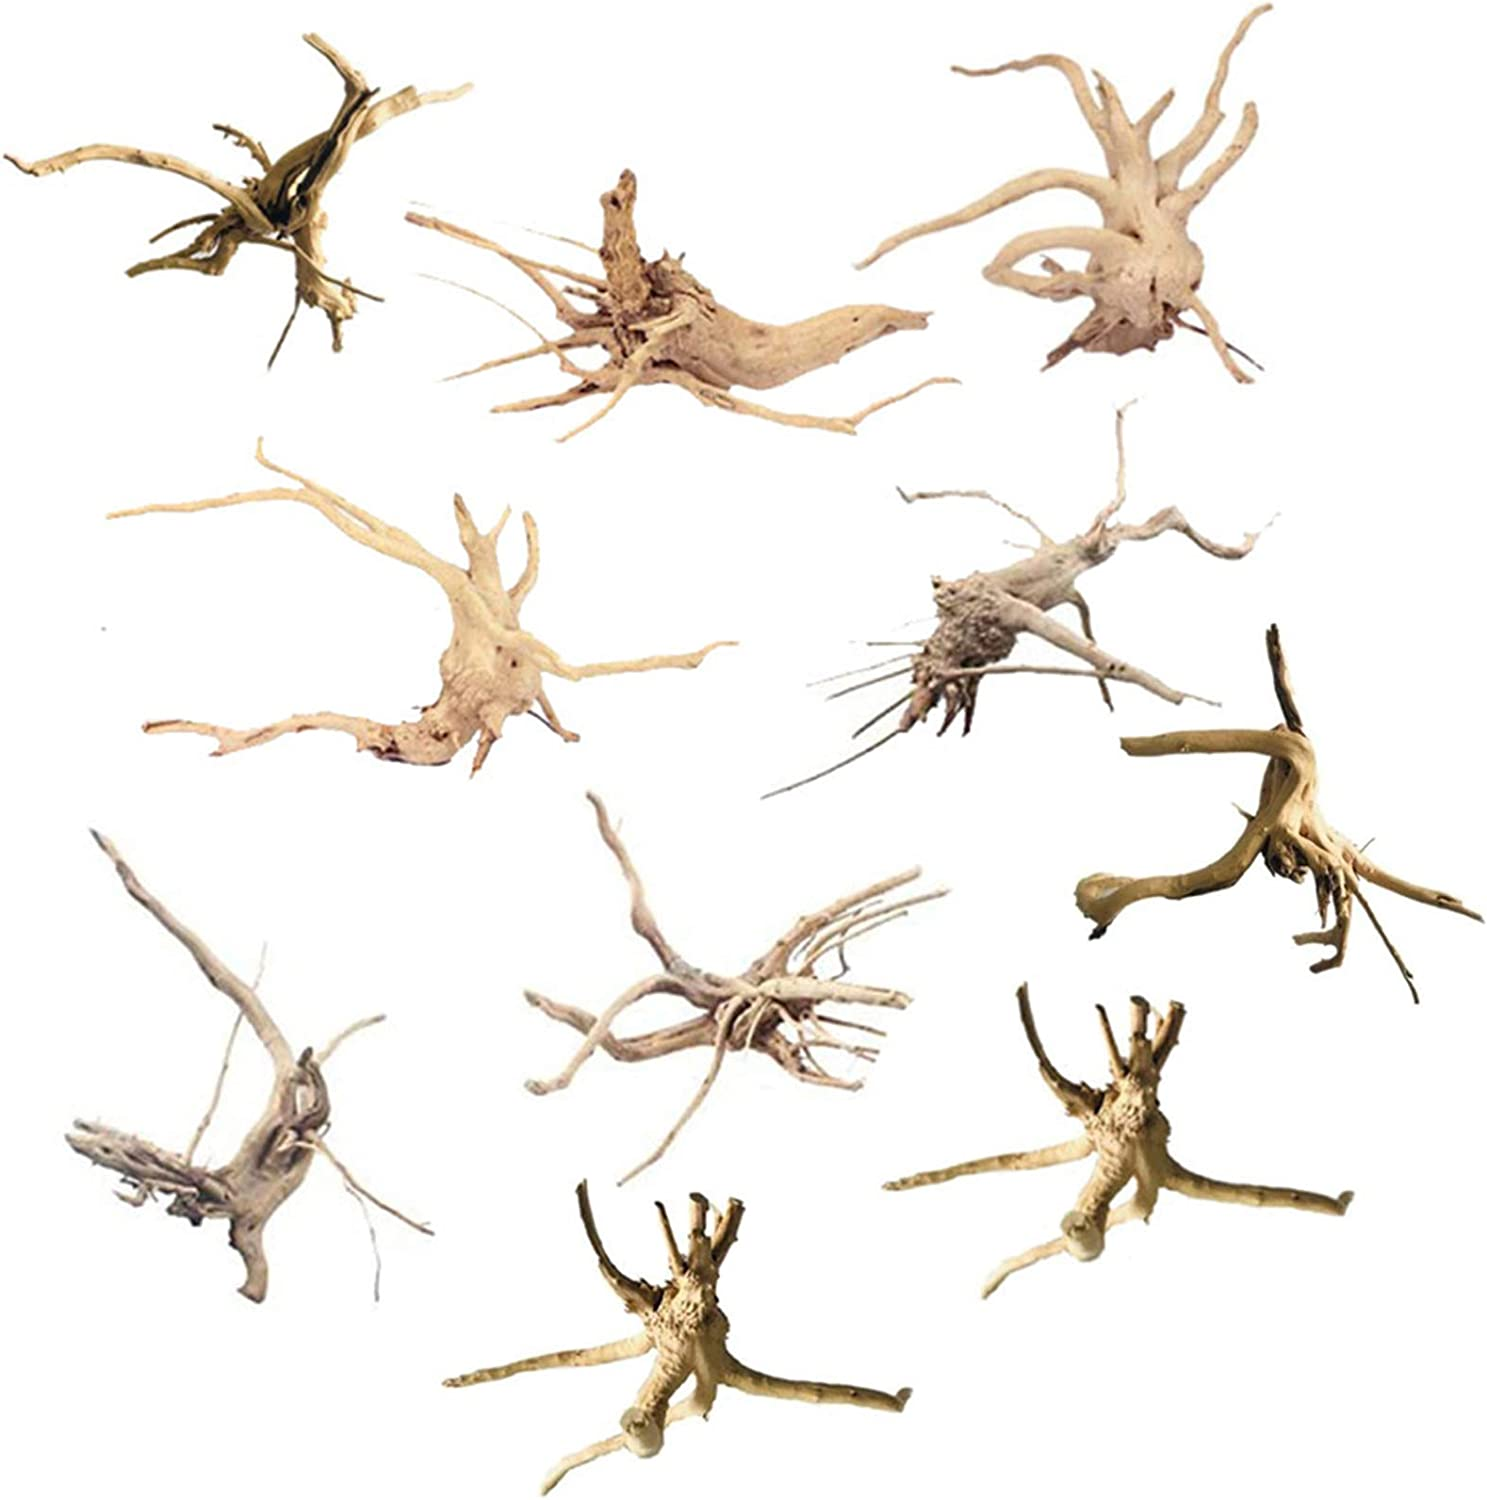 10 Pack kathson Mini Driftwood for Aquarium Natural Wood Branches Fish Tank Decorations Reptiles Tree Trunk Driftwood Assorted